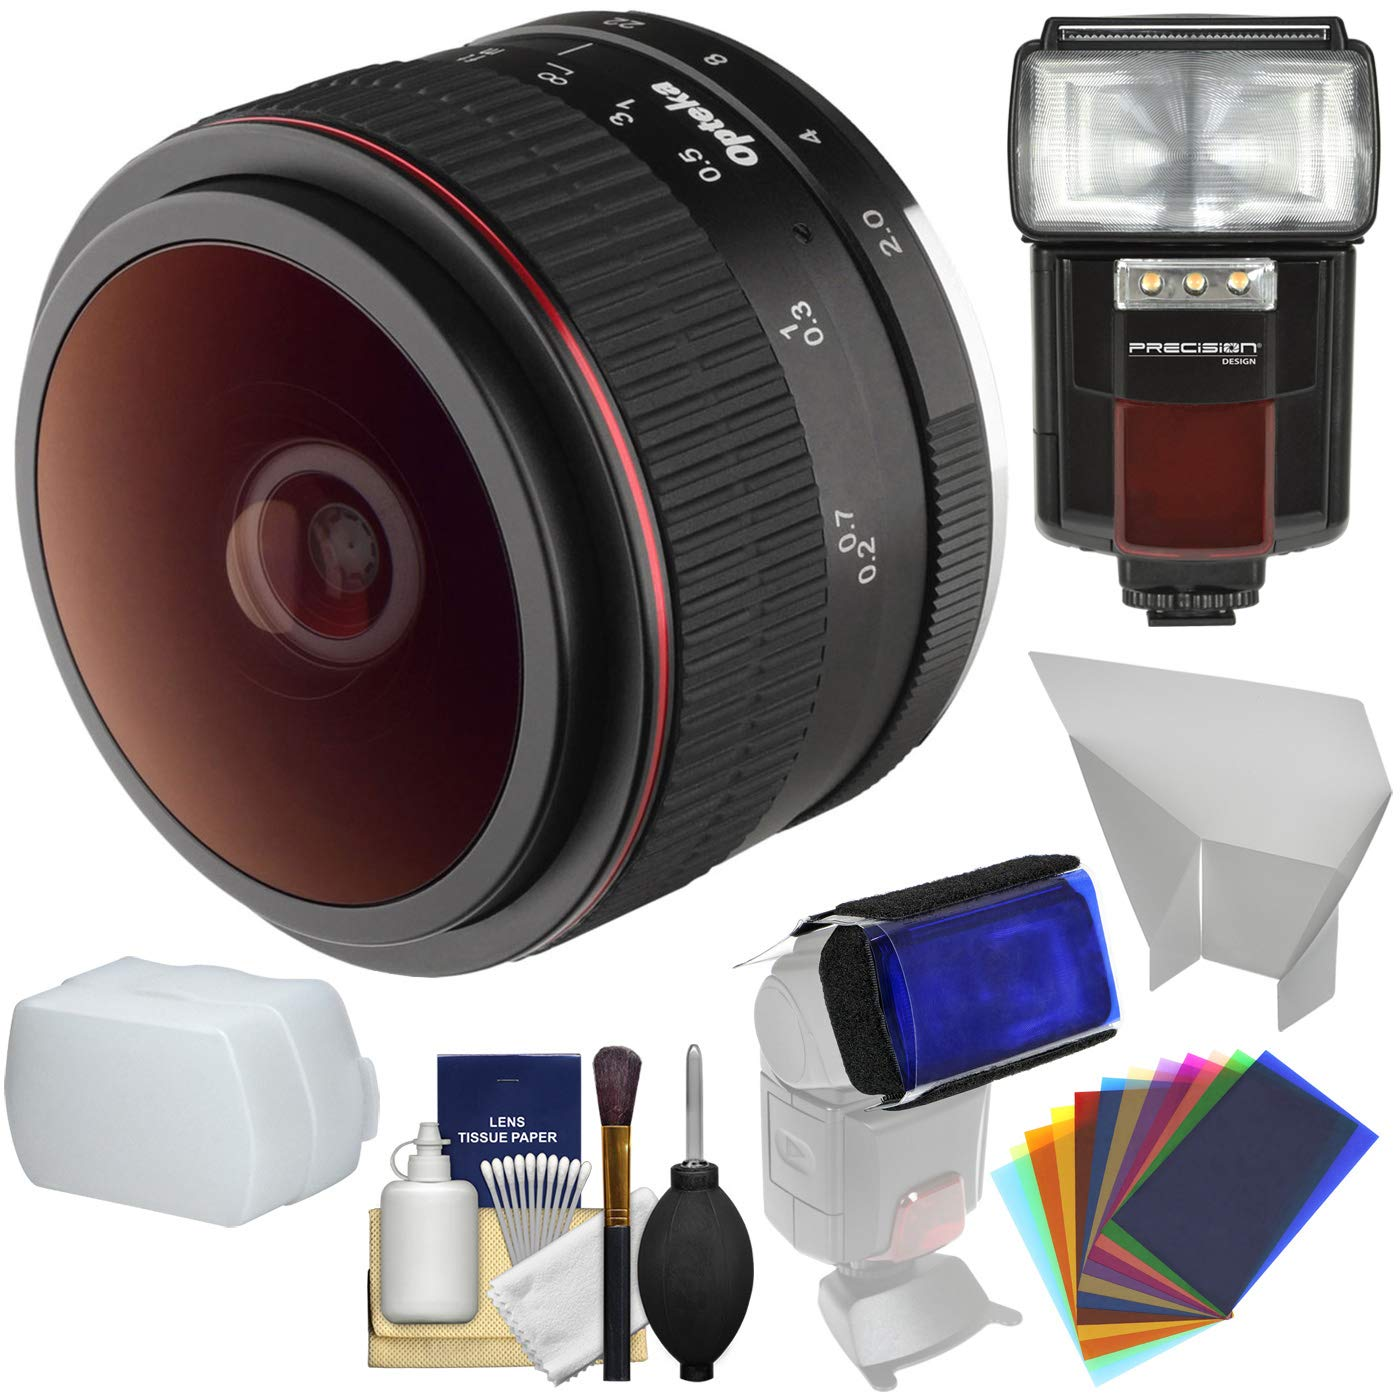 Opteka 6.5mm f/2 HD MF Prime Fisheye Lens with Flash + Diffusers + Color Gels Kit for Olympus OM-D, Pen & Panasonic LUMIX Micro 4/3 Digital Cameras by Opteka (Image #1)